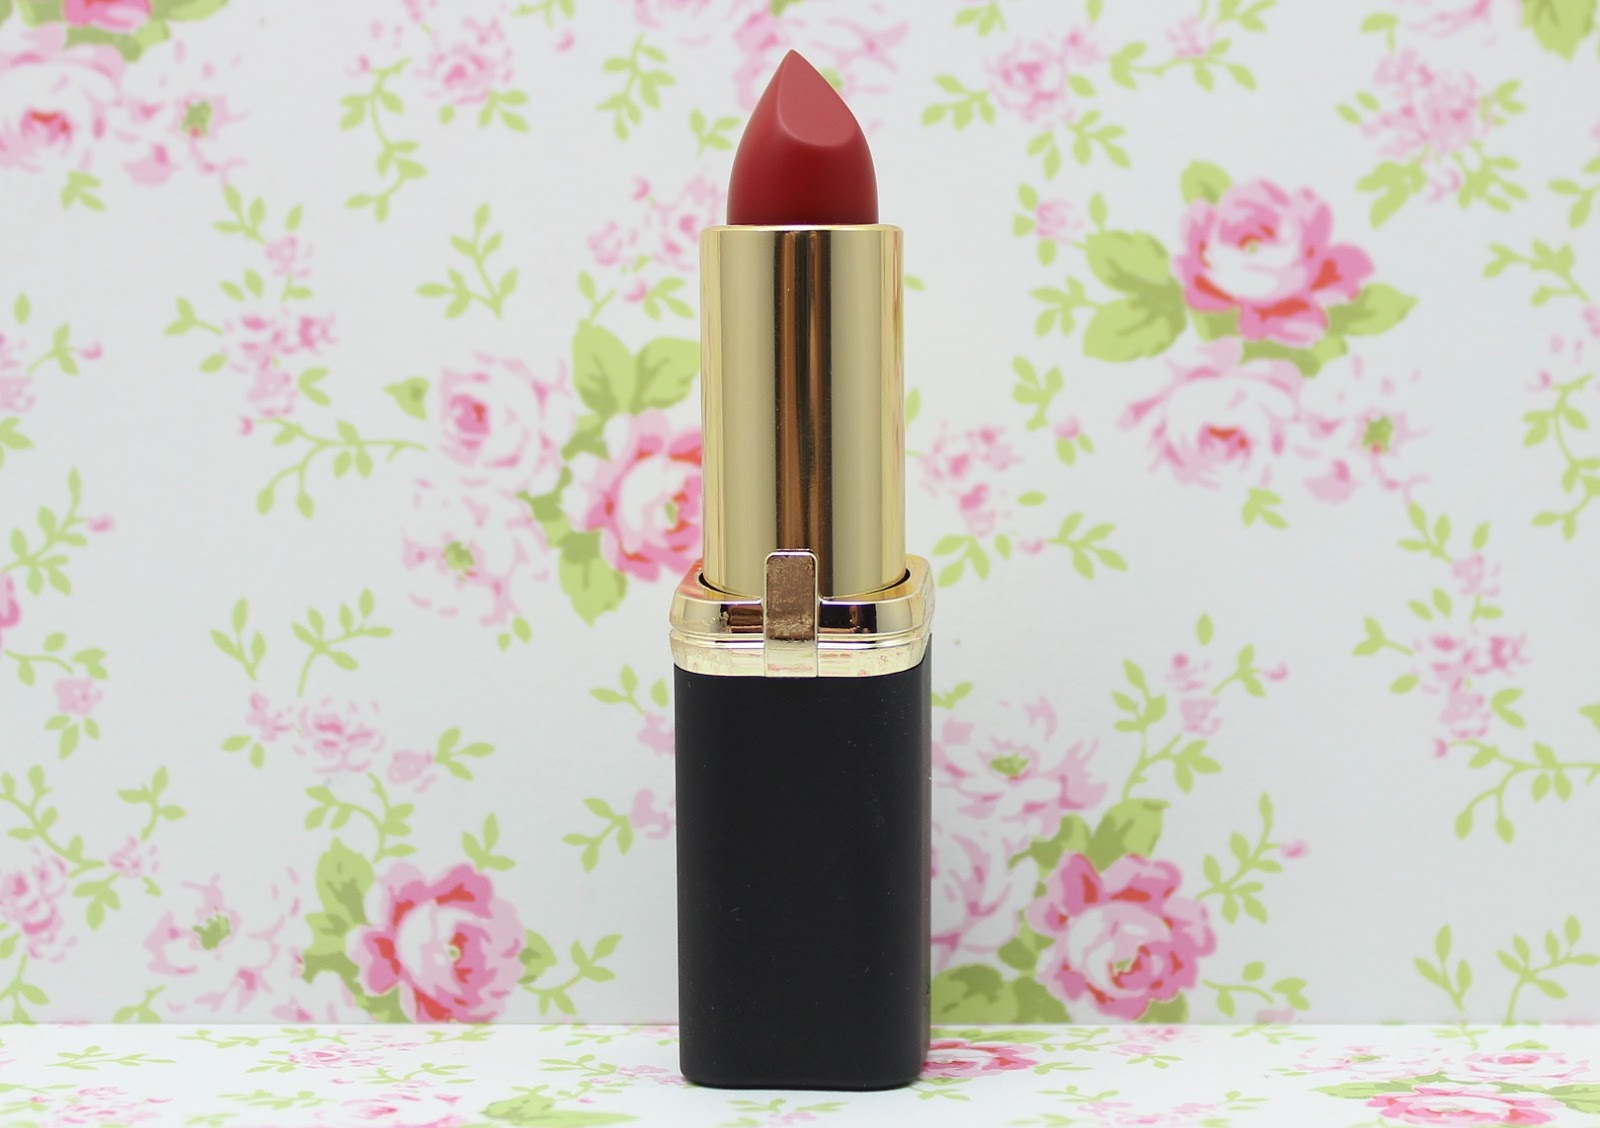 L'Oreal Color Riche Collection Exclusive Reds Lipstick - Eva's Red